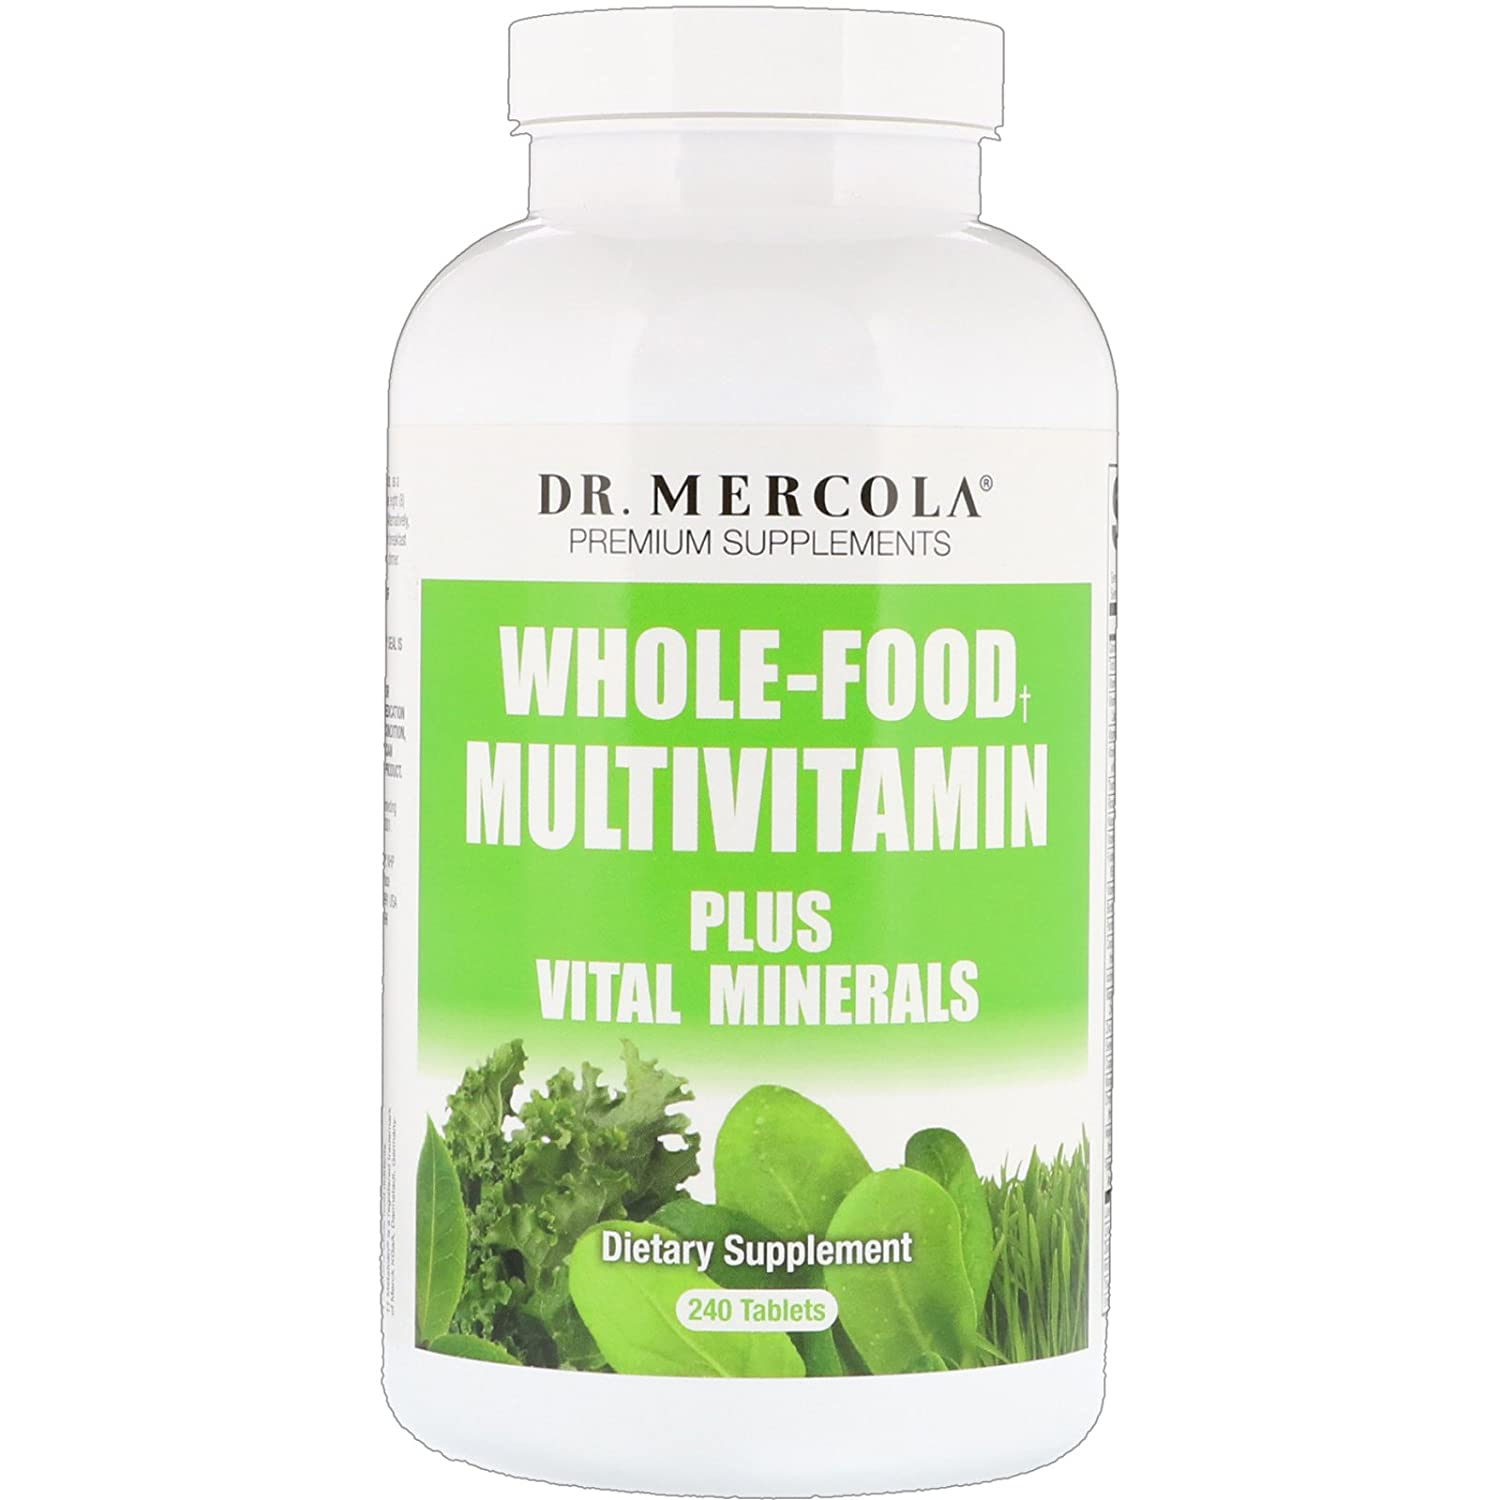 Dr. Mercola, Premium Supplements, Whole Food Multivitamin Plus, 240 Tablets B004NE9Y1A